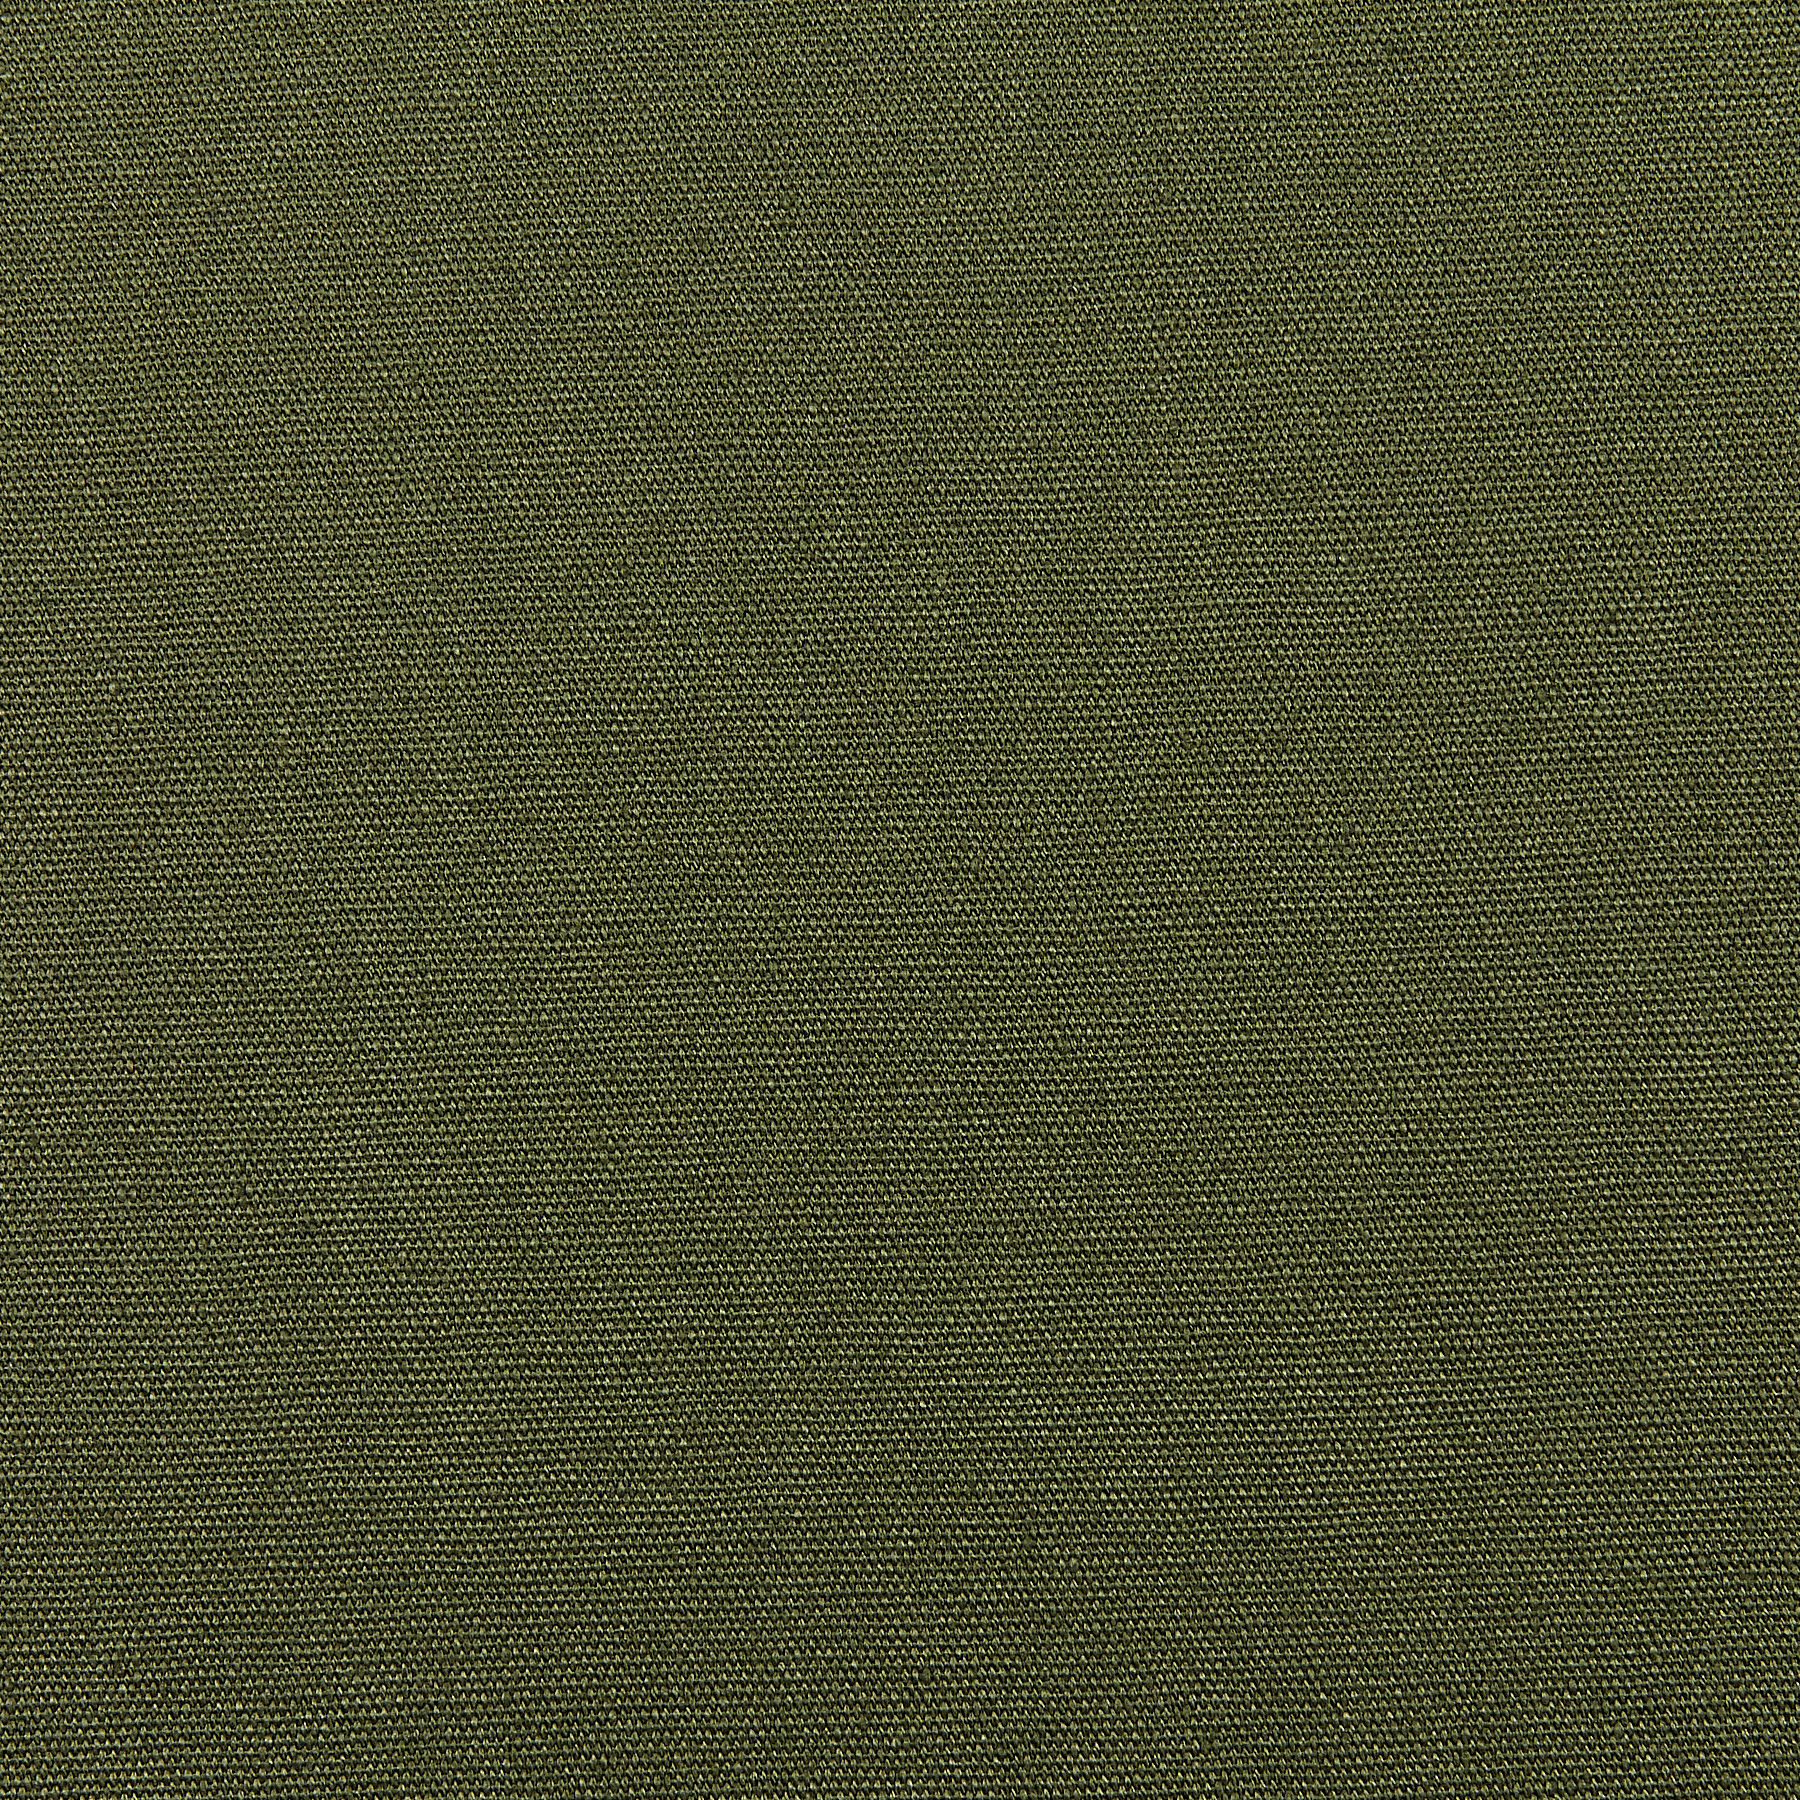 Kaufman Outback Canvas Olive Fabric by Kaufman in USA